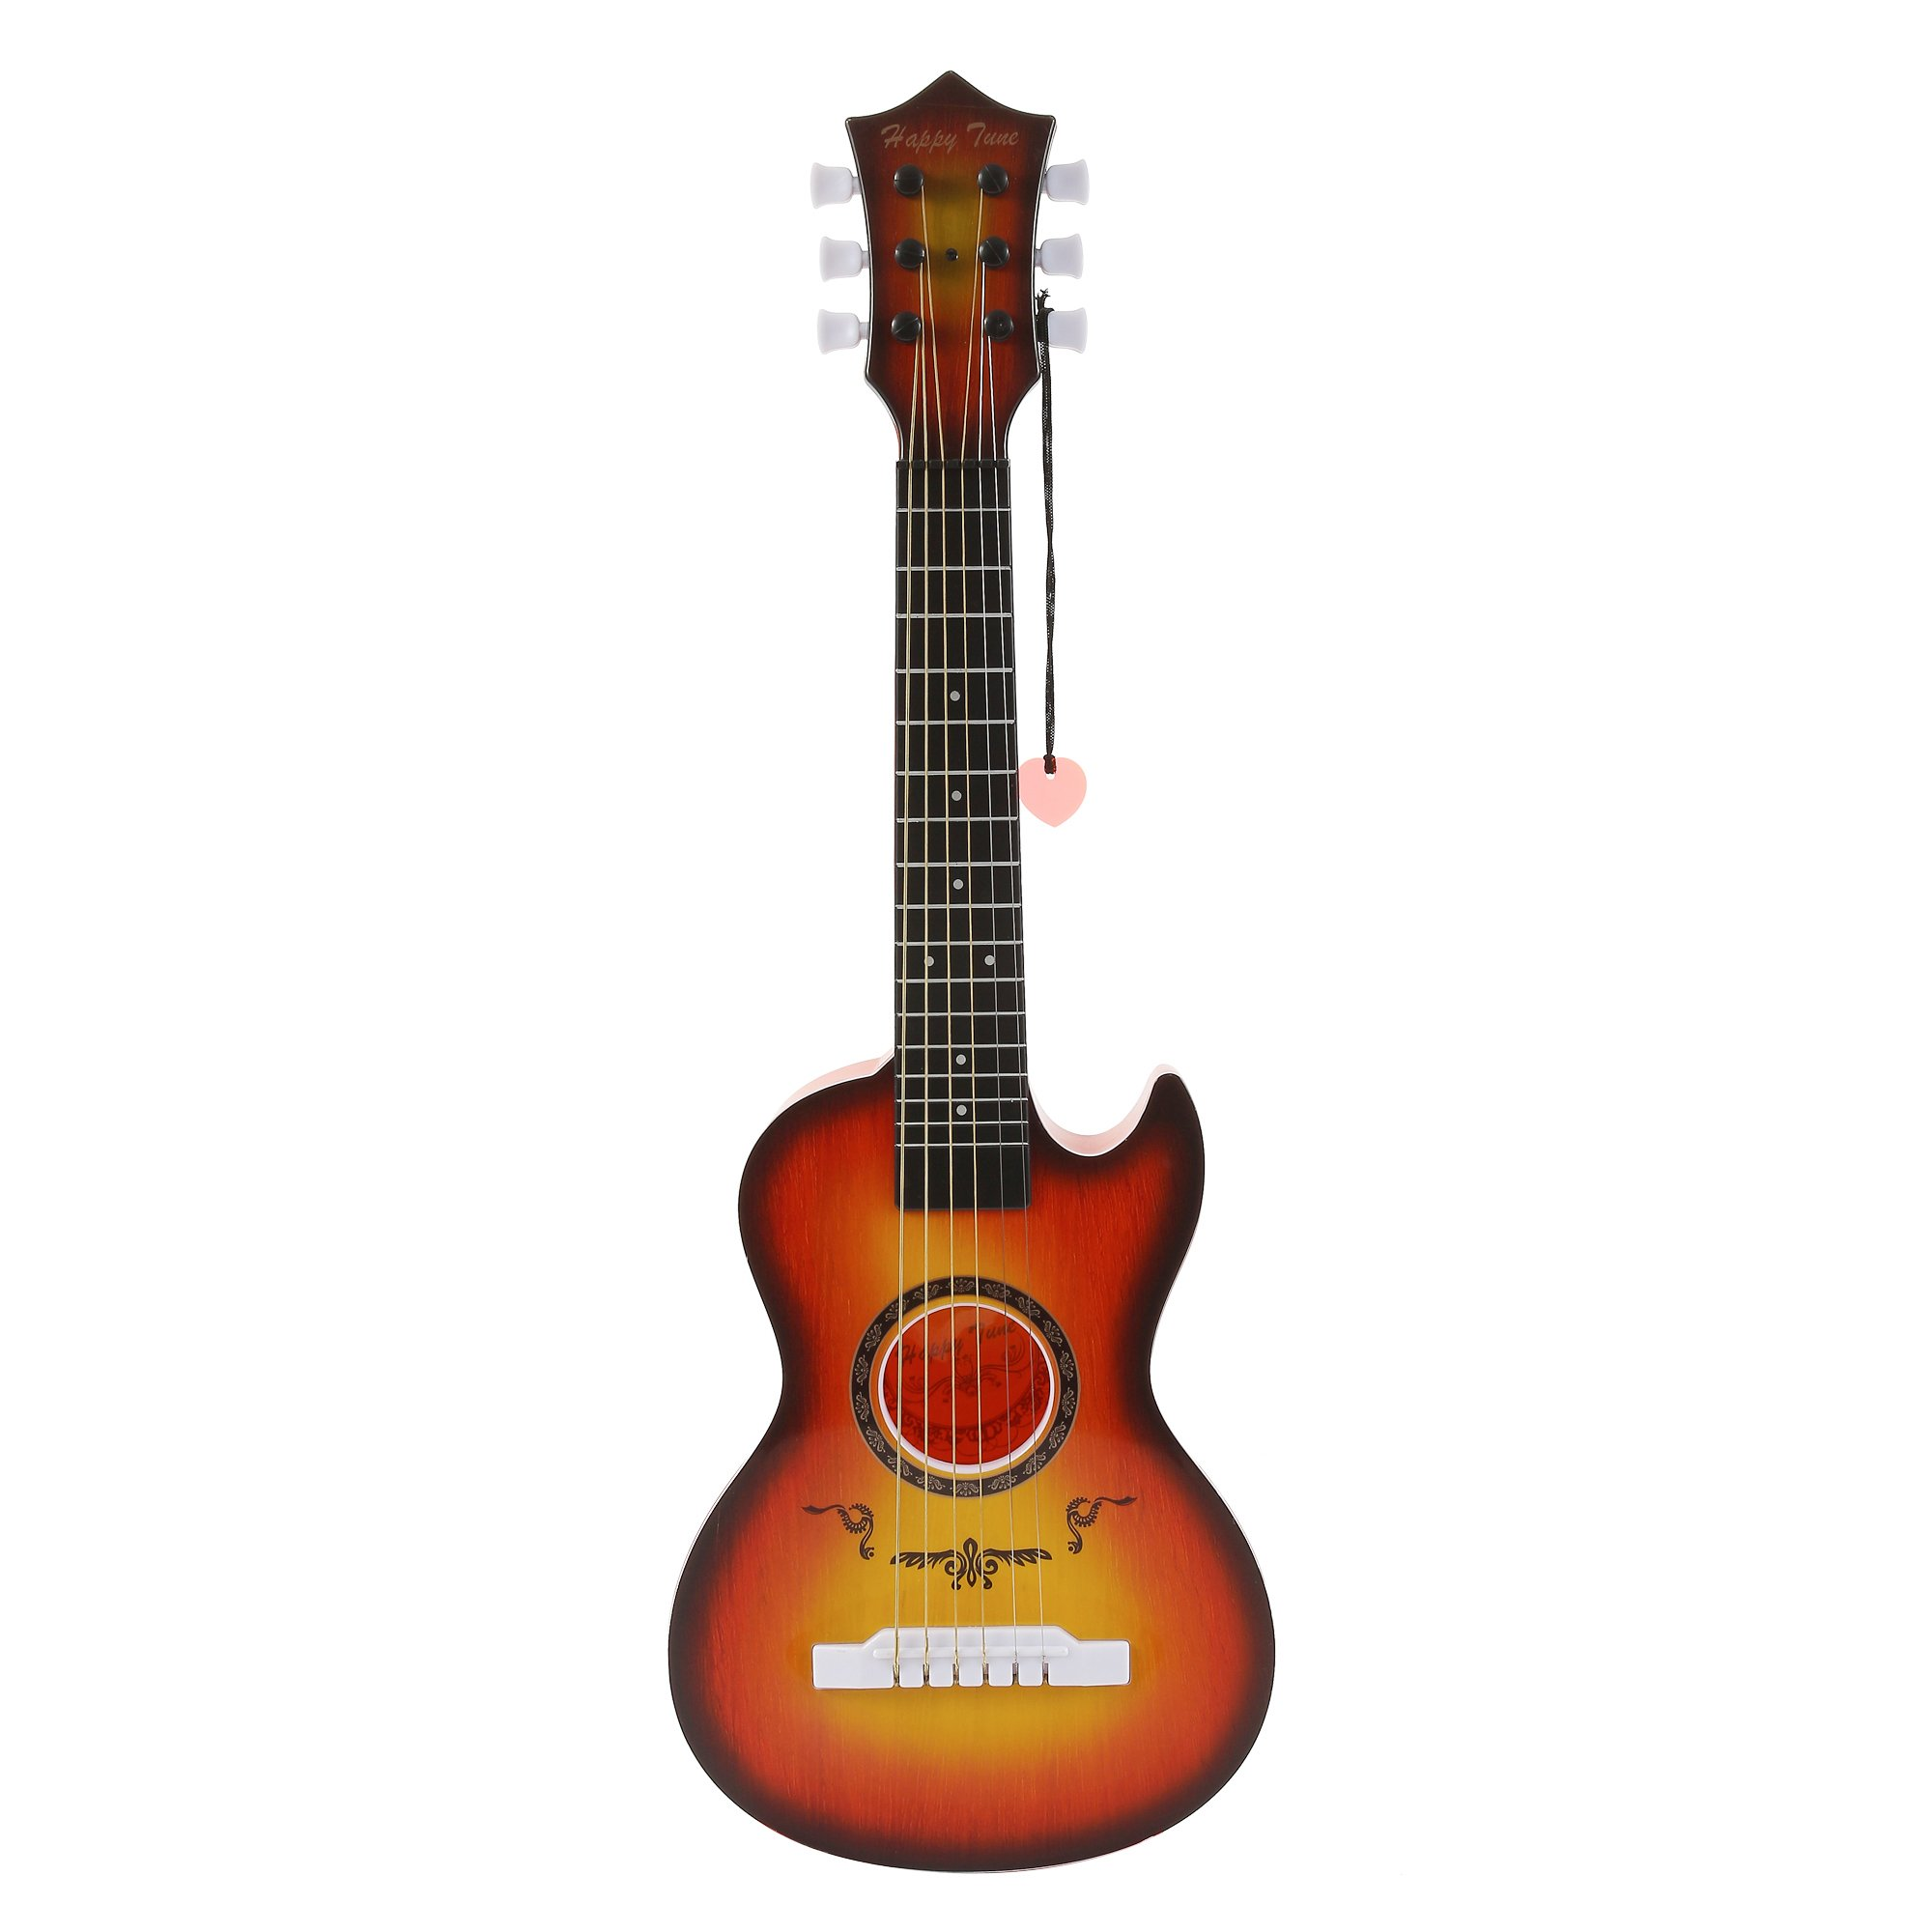 Liberty Imports Happy Tune 6 String Acoustic Guitar Toy for Kids with Vibrant Sounds and Tunable Strings (Cherry Sunburst)